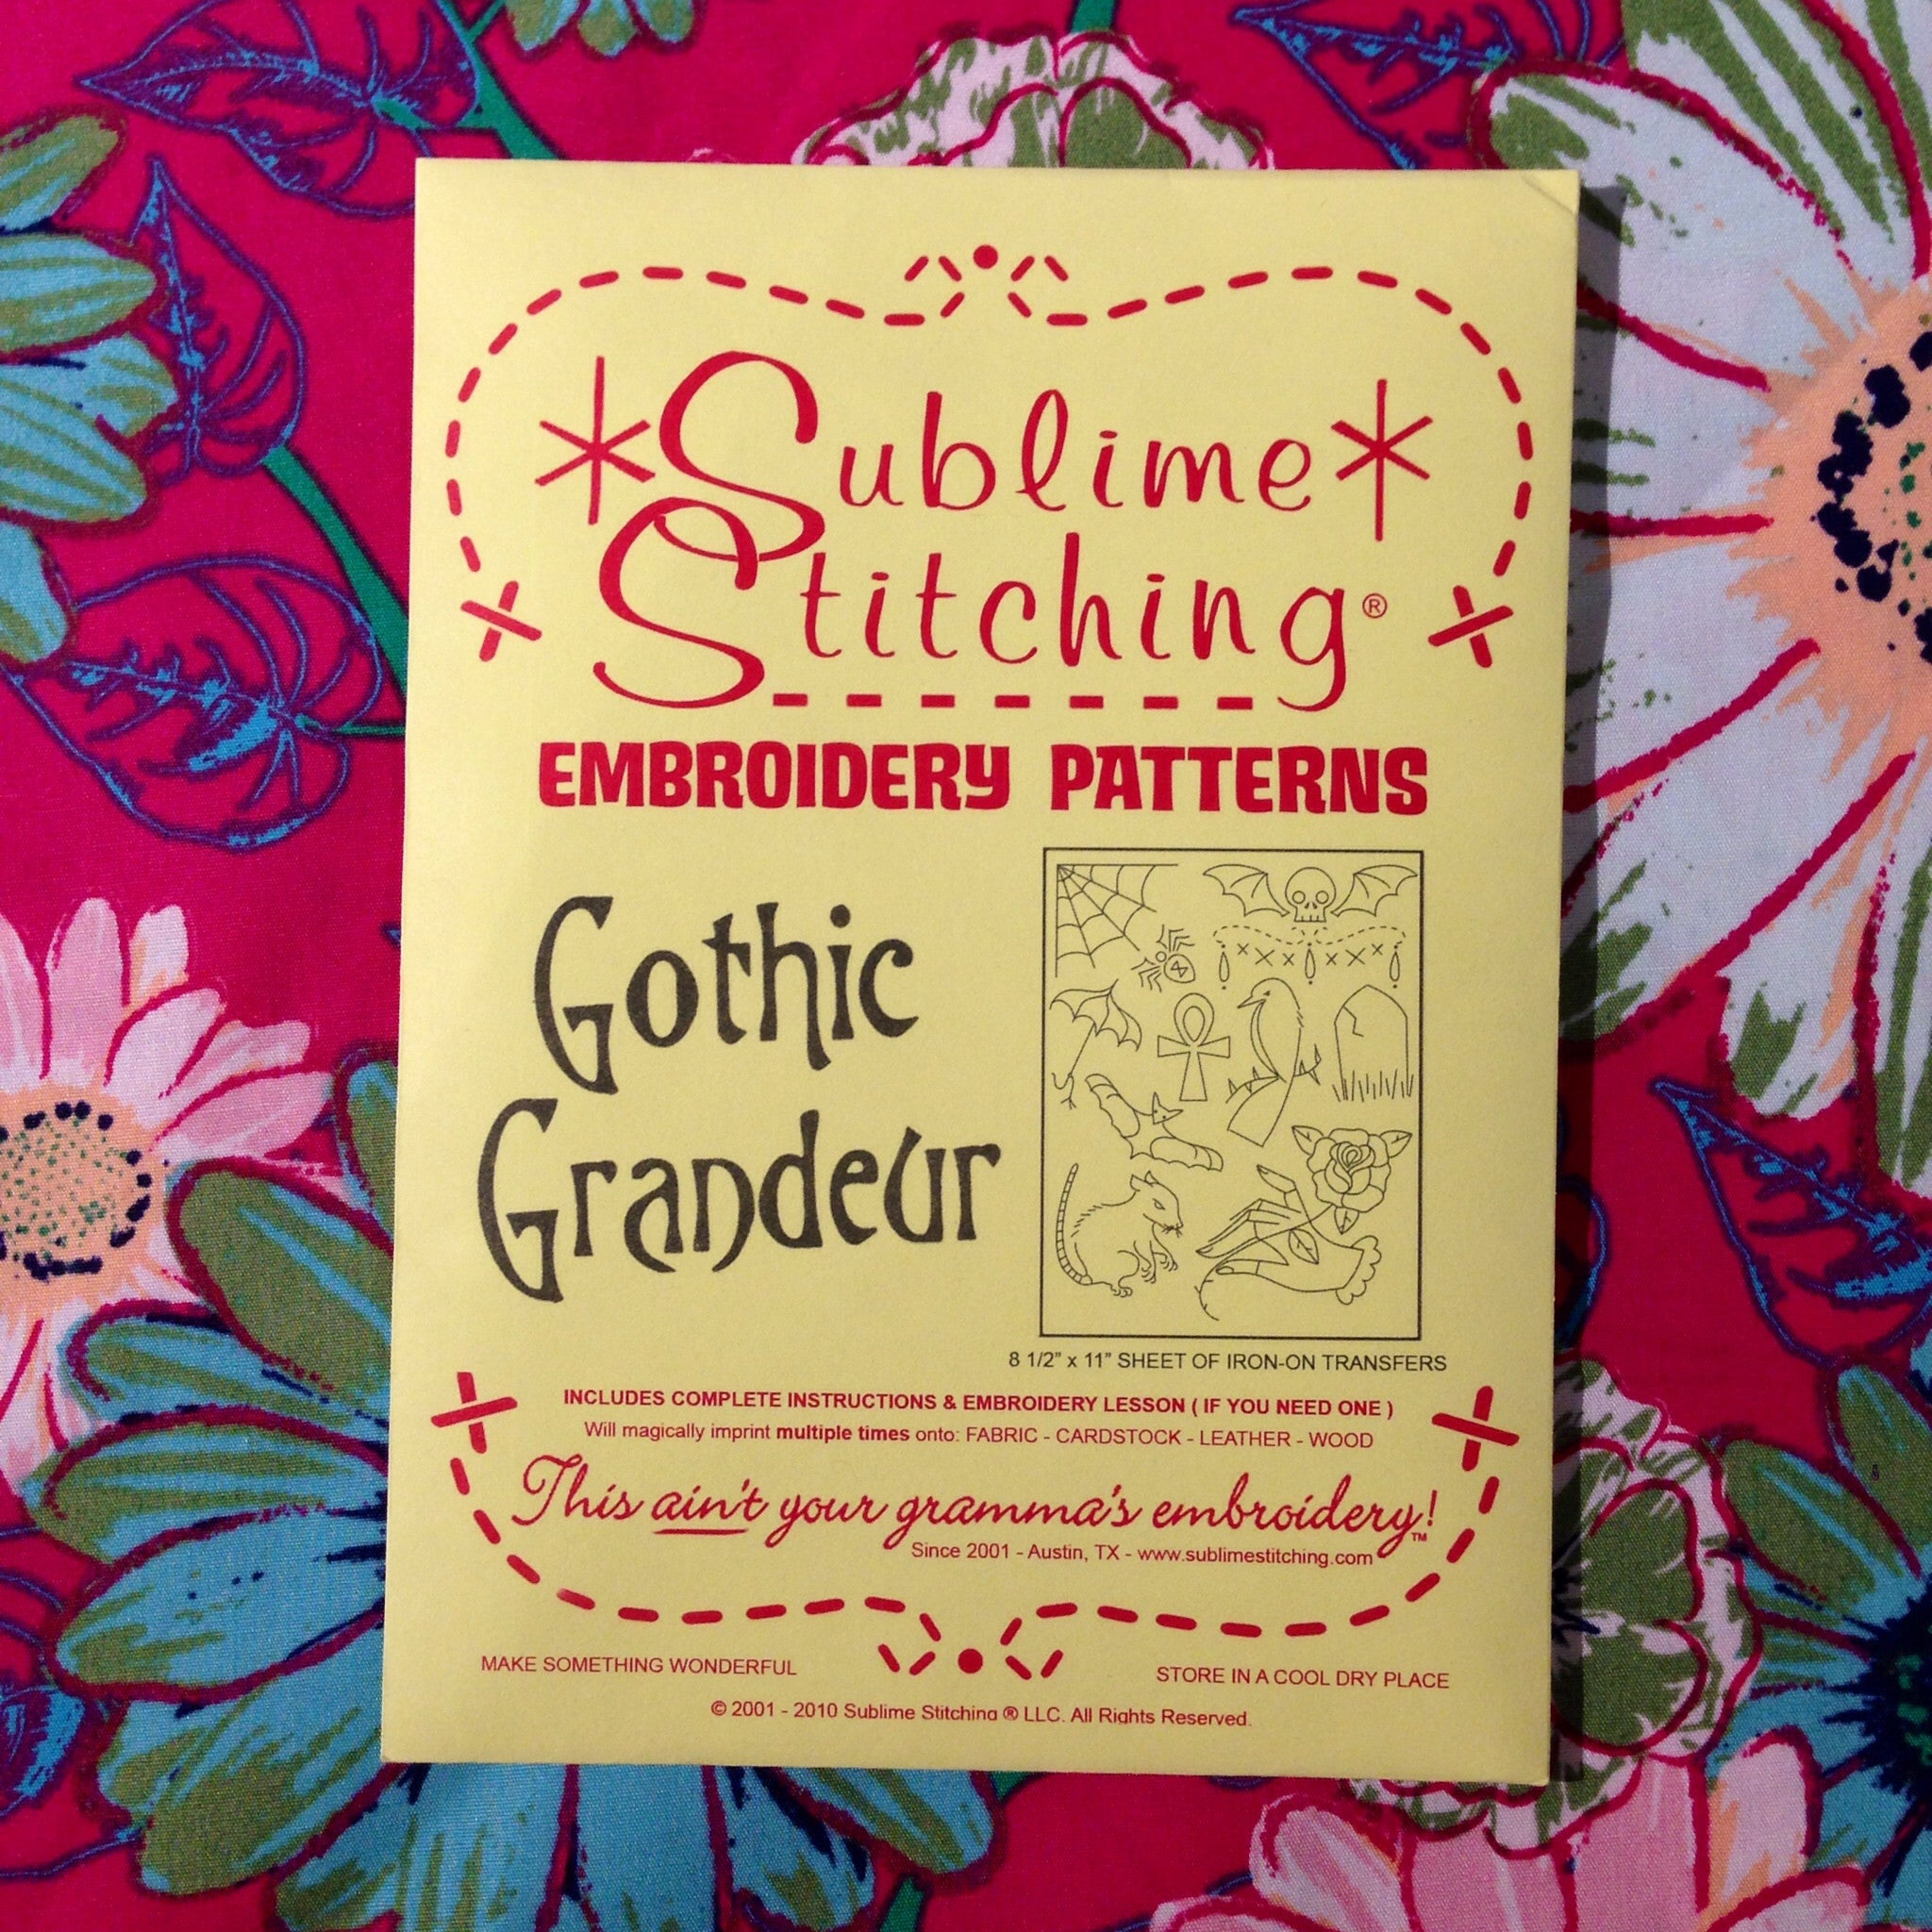 Sublime Stitching Embroidery Patterns - Gothic Grandeur